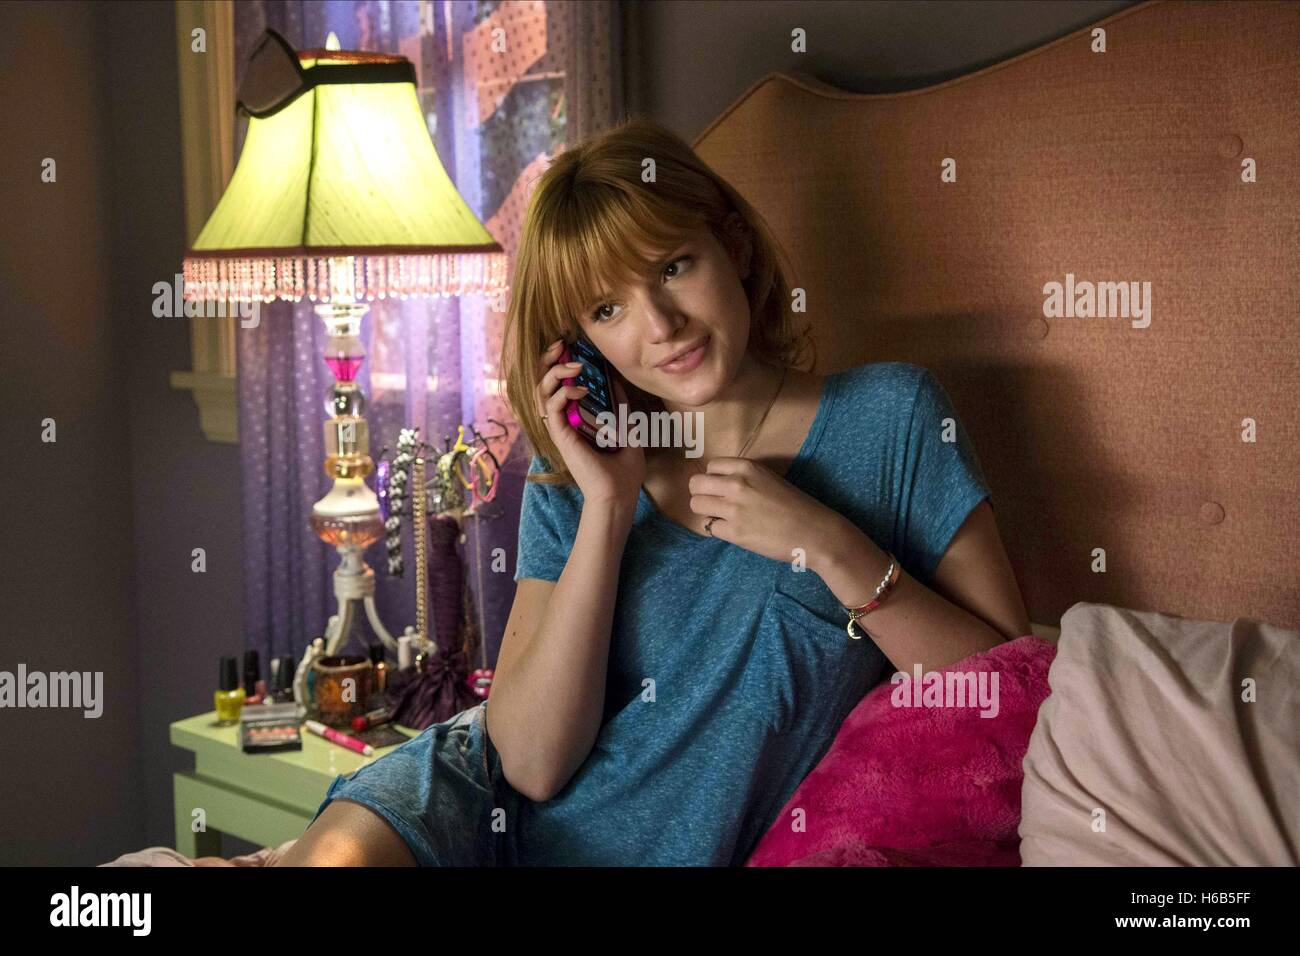 BELLA THORNE ALEXANDER AND THE TERRIBLE HORRIBLE NO GOOD VERY BAD DAY (2014) - Stock Image